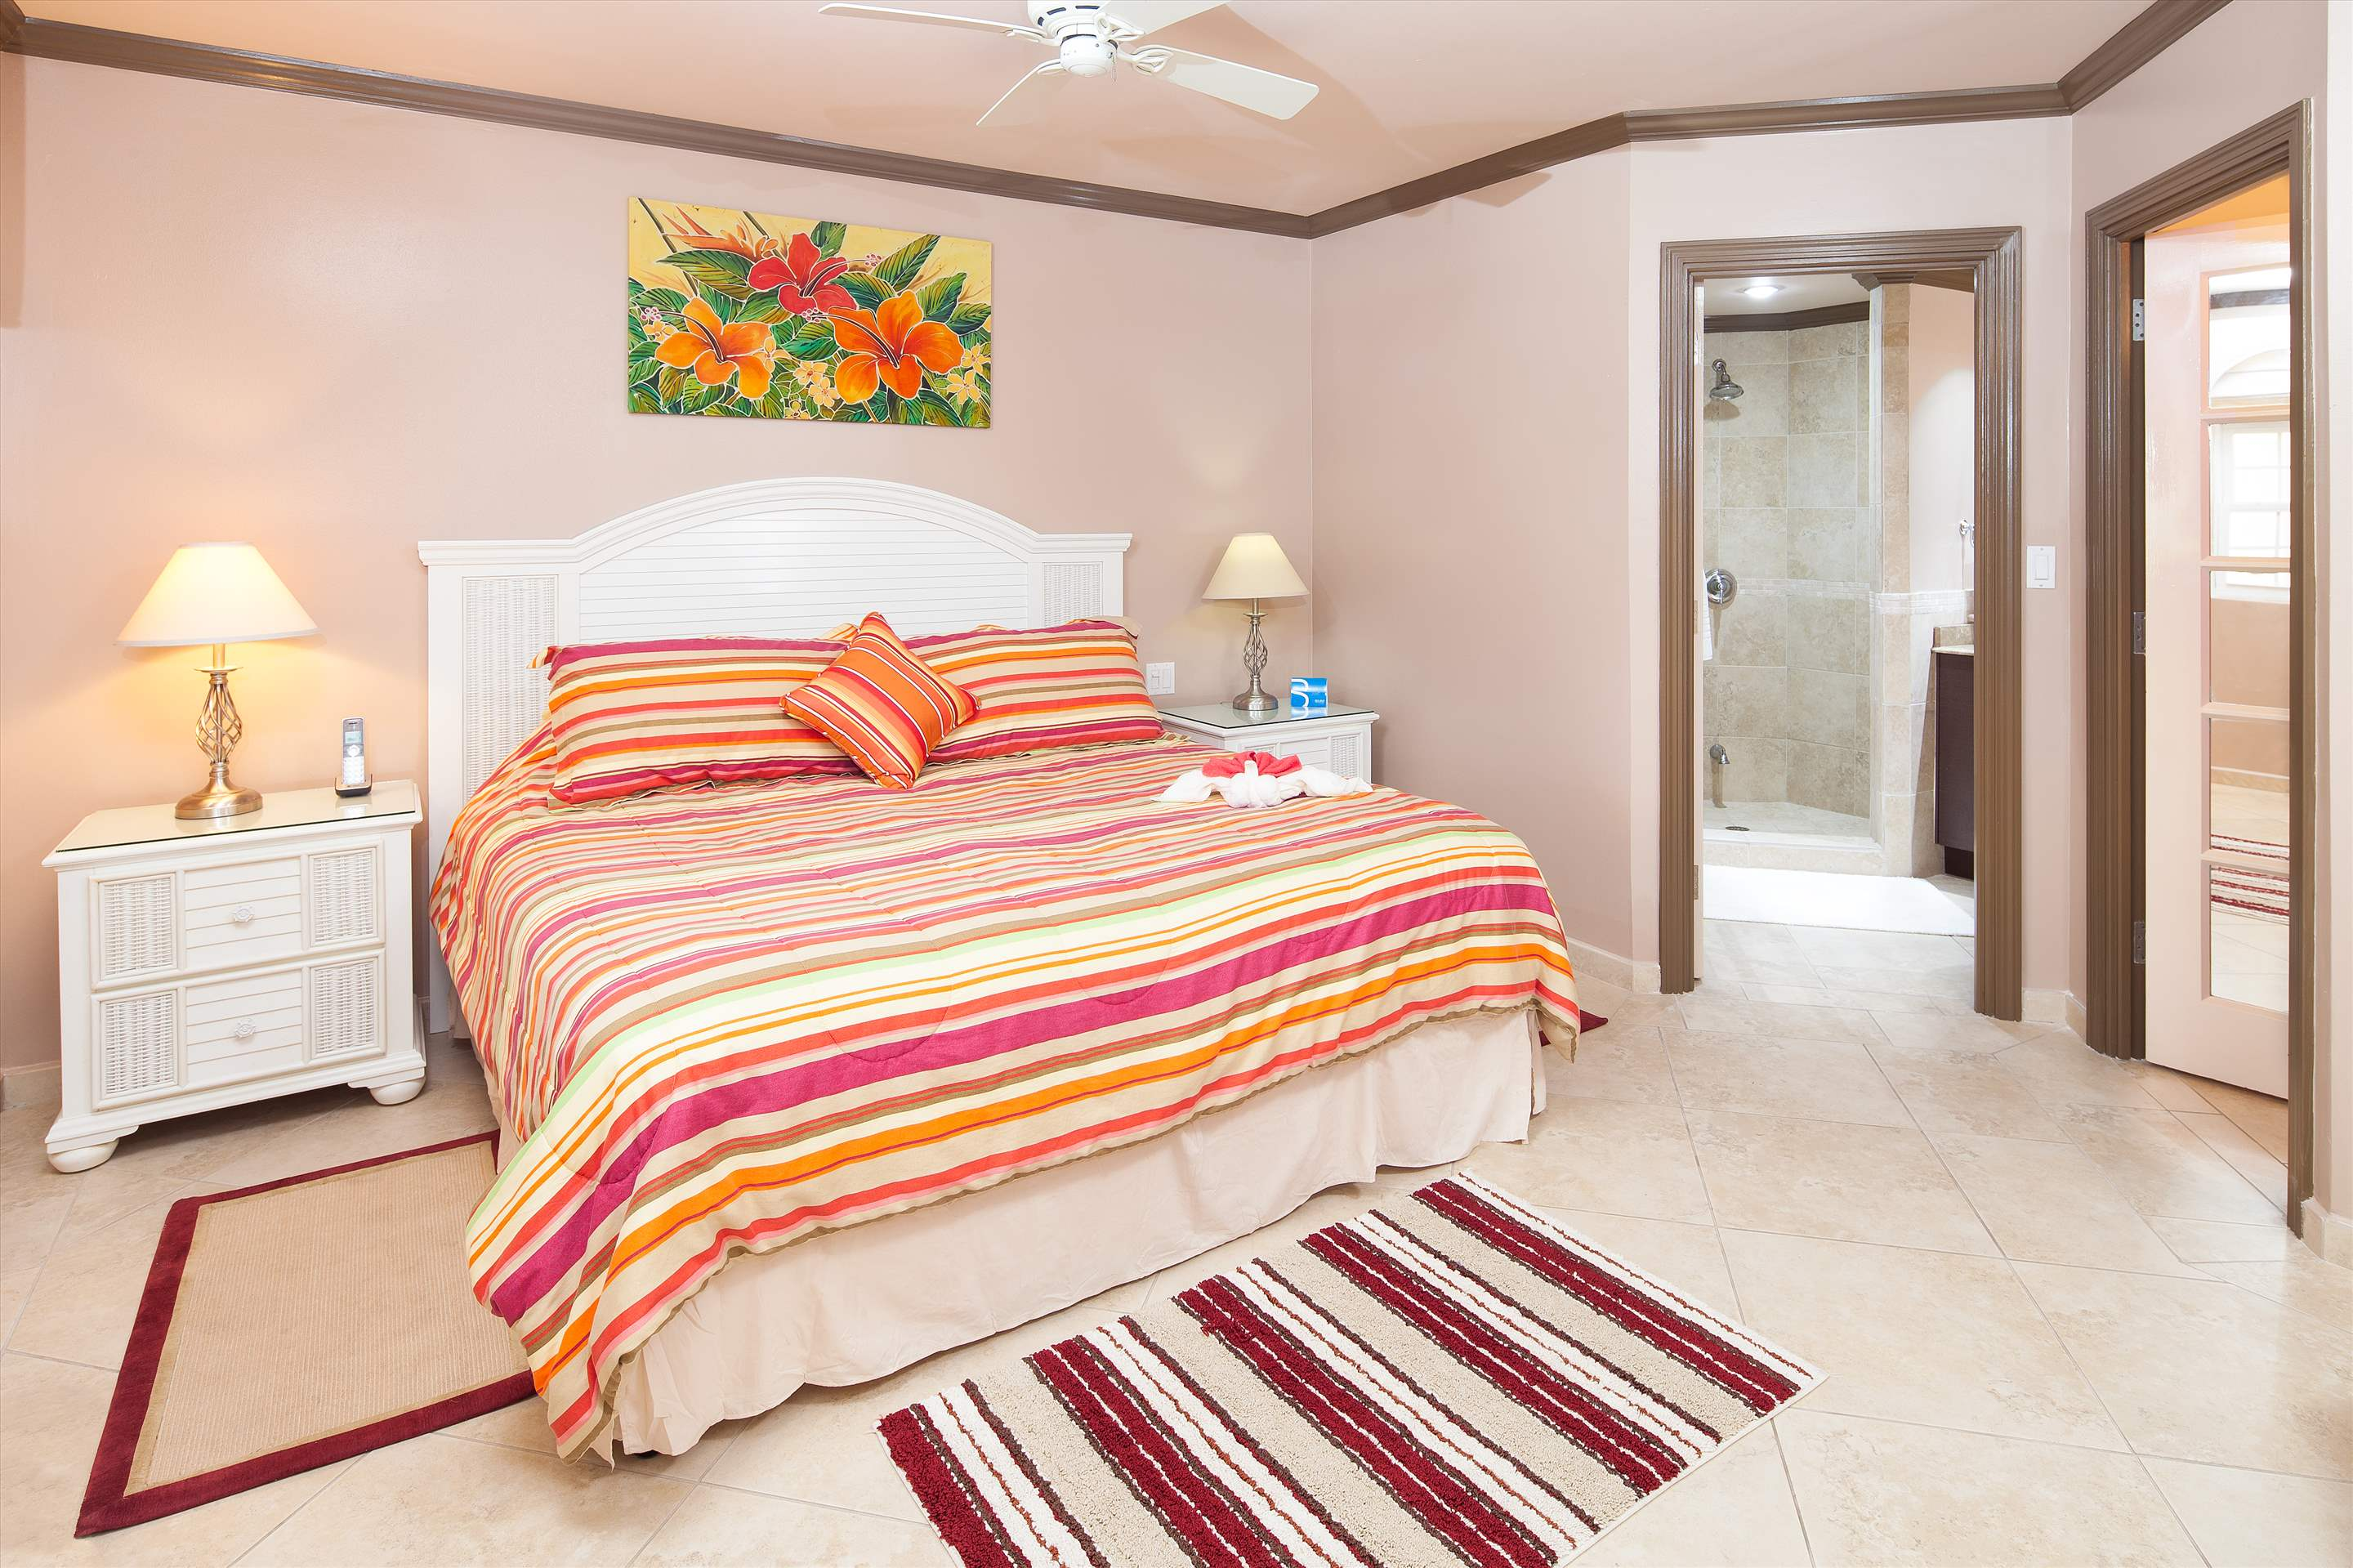 Sapphire Beach 309, 2 bedroom, 2 bedroom apartment in St. Lawrence Gap & South Coast, Barbados Photo #7